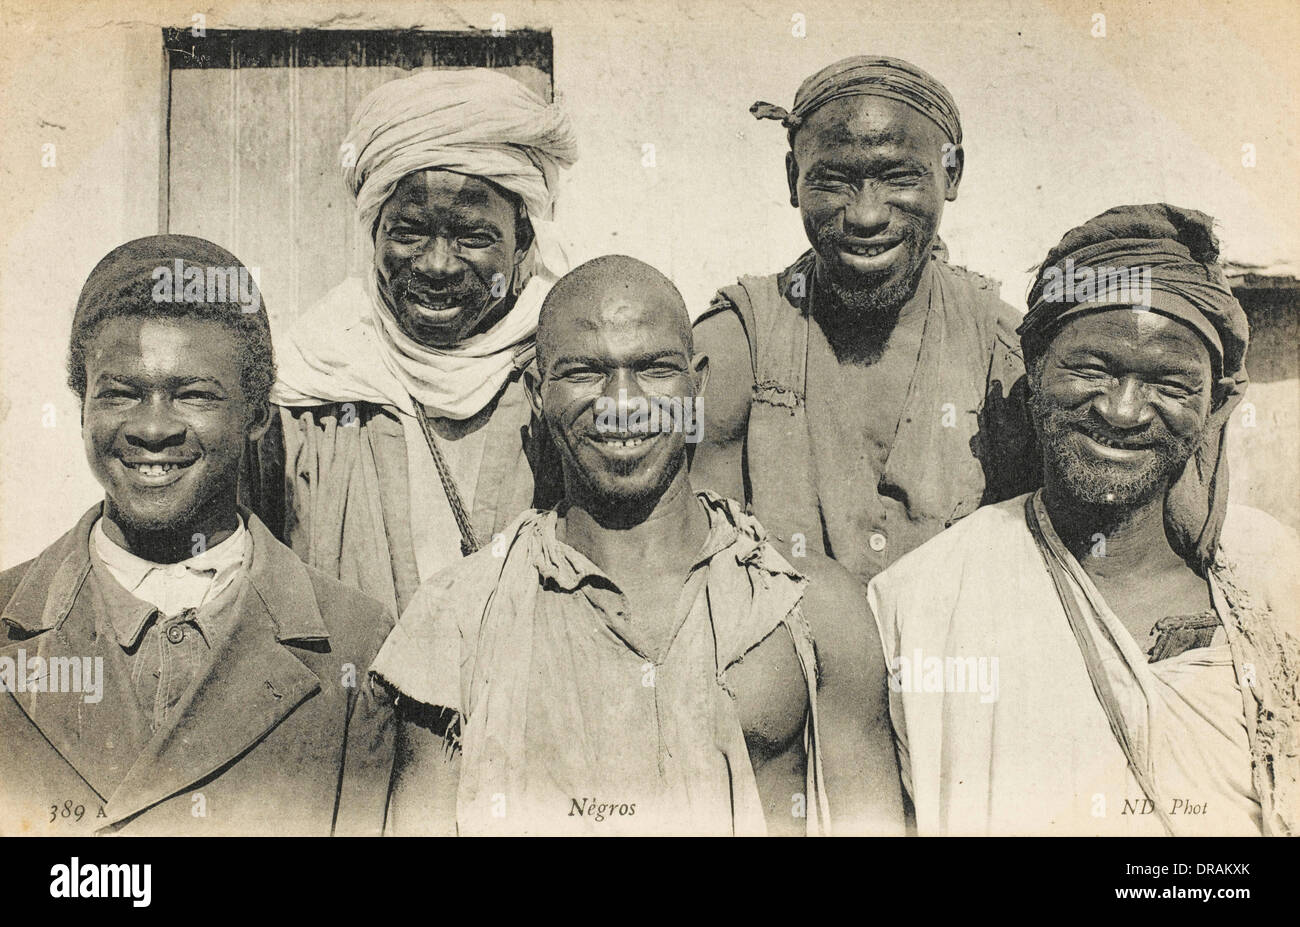 Five Jolly Africans from Algeria - Stock Image